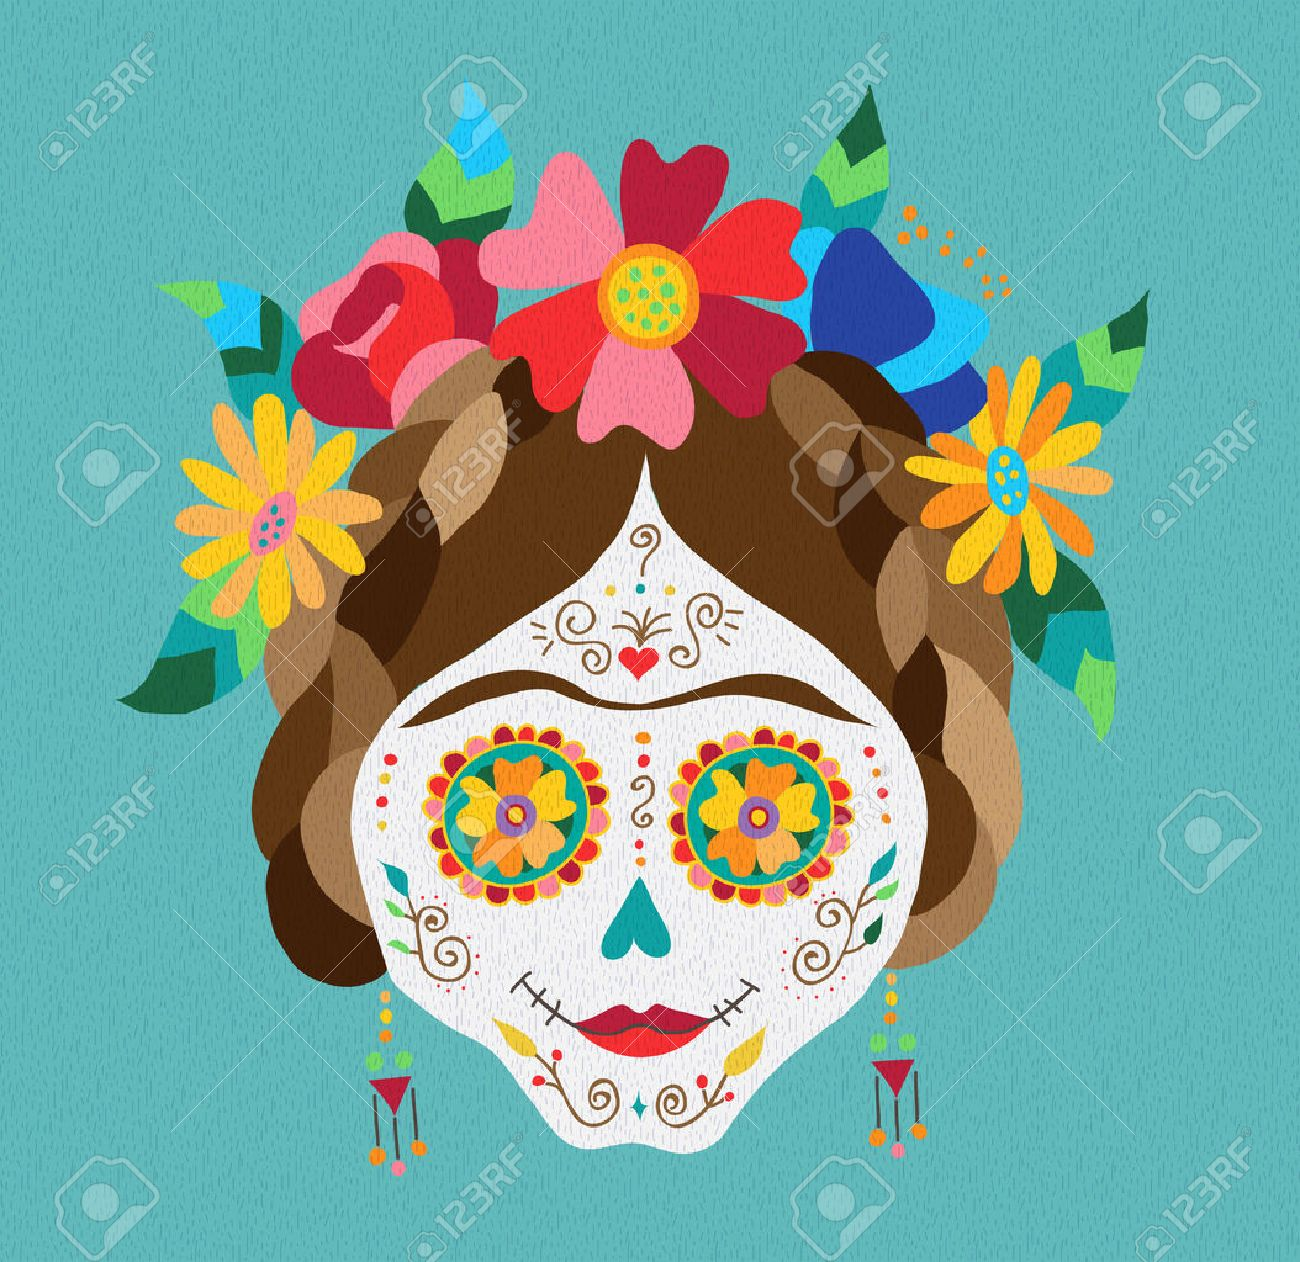 14,804 Day Of The Dead Cliparts, Stock Vector And Royalty Free Day